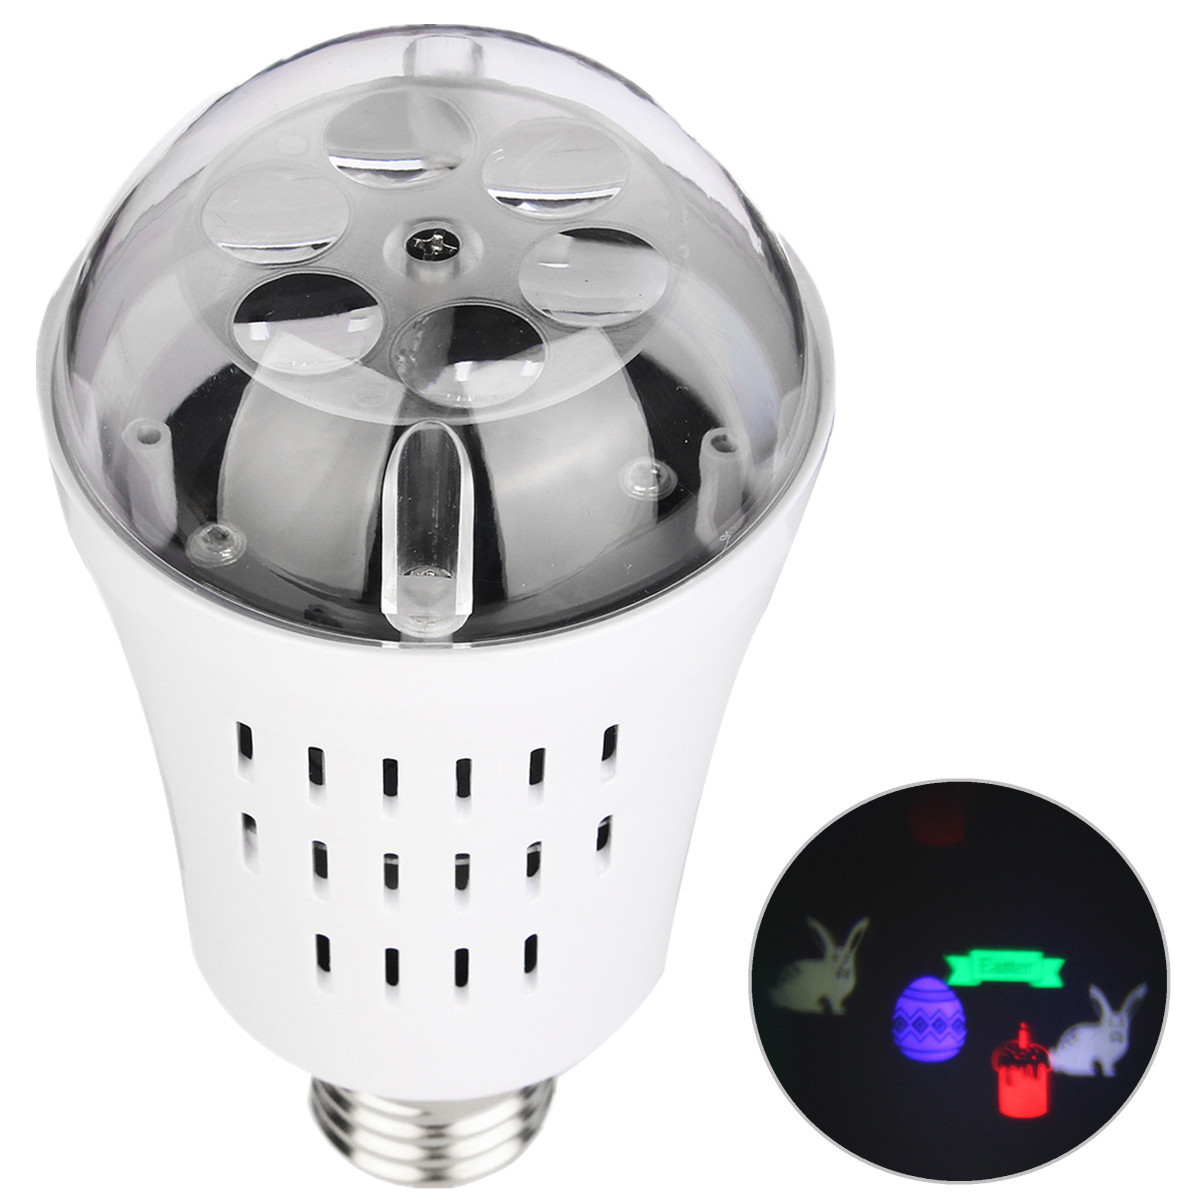 E27 AC85-265V 4W LED Easter Theme Landscape Laser Projector Light Lamp Bulb